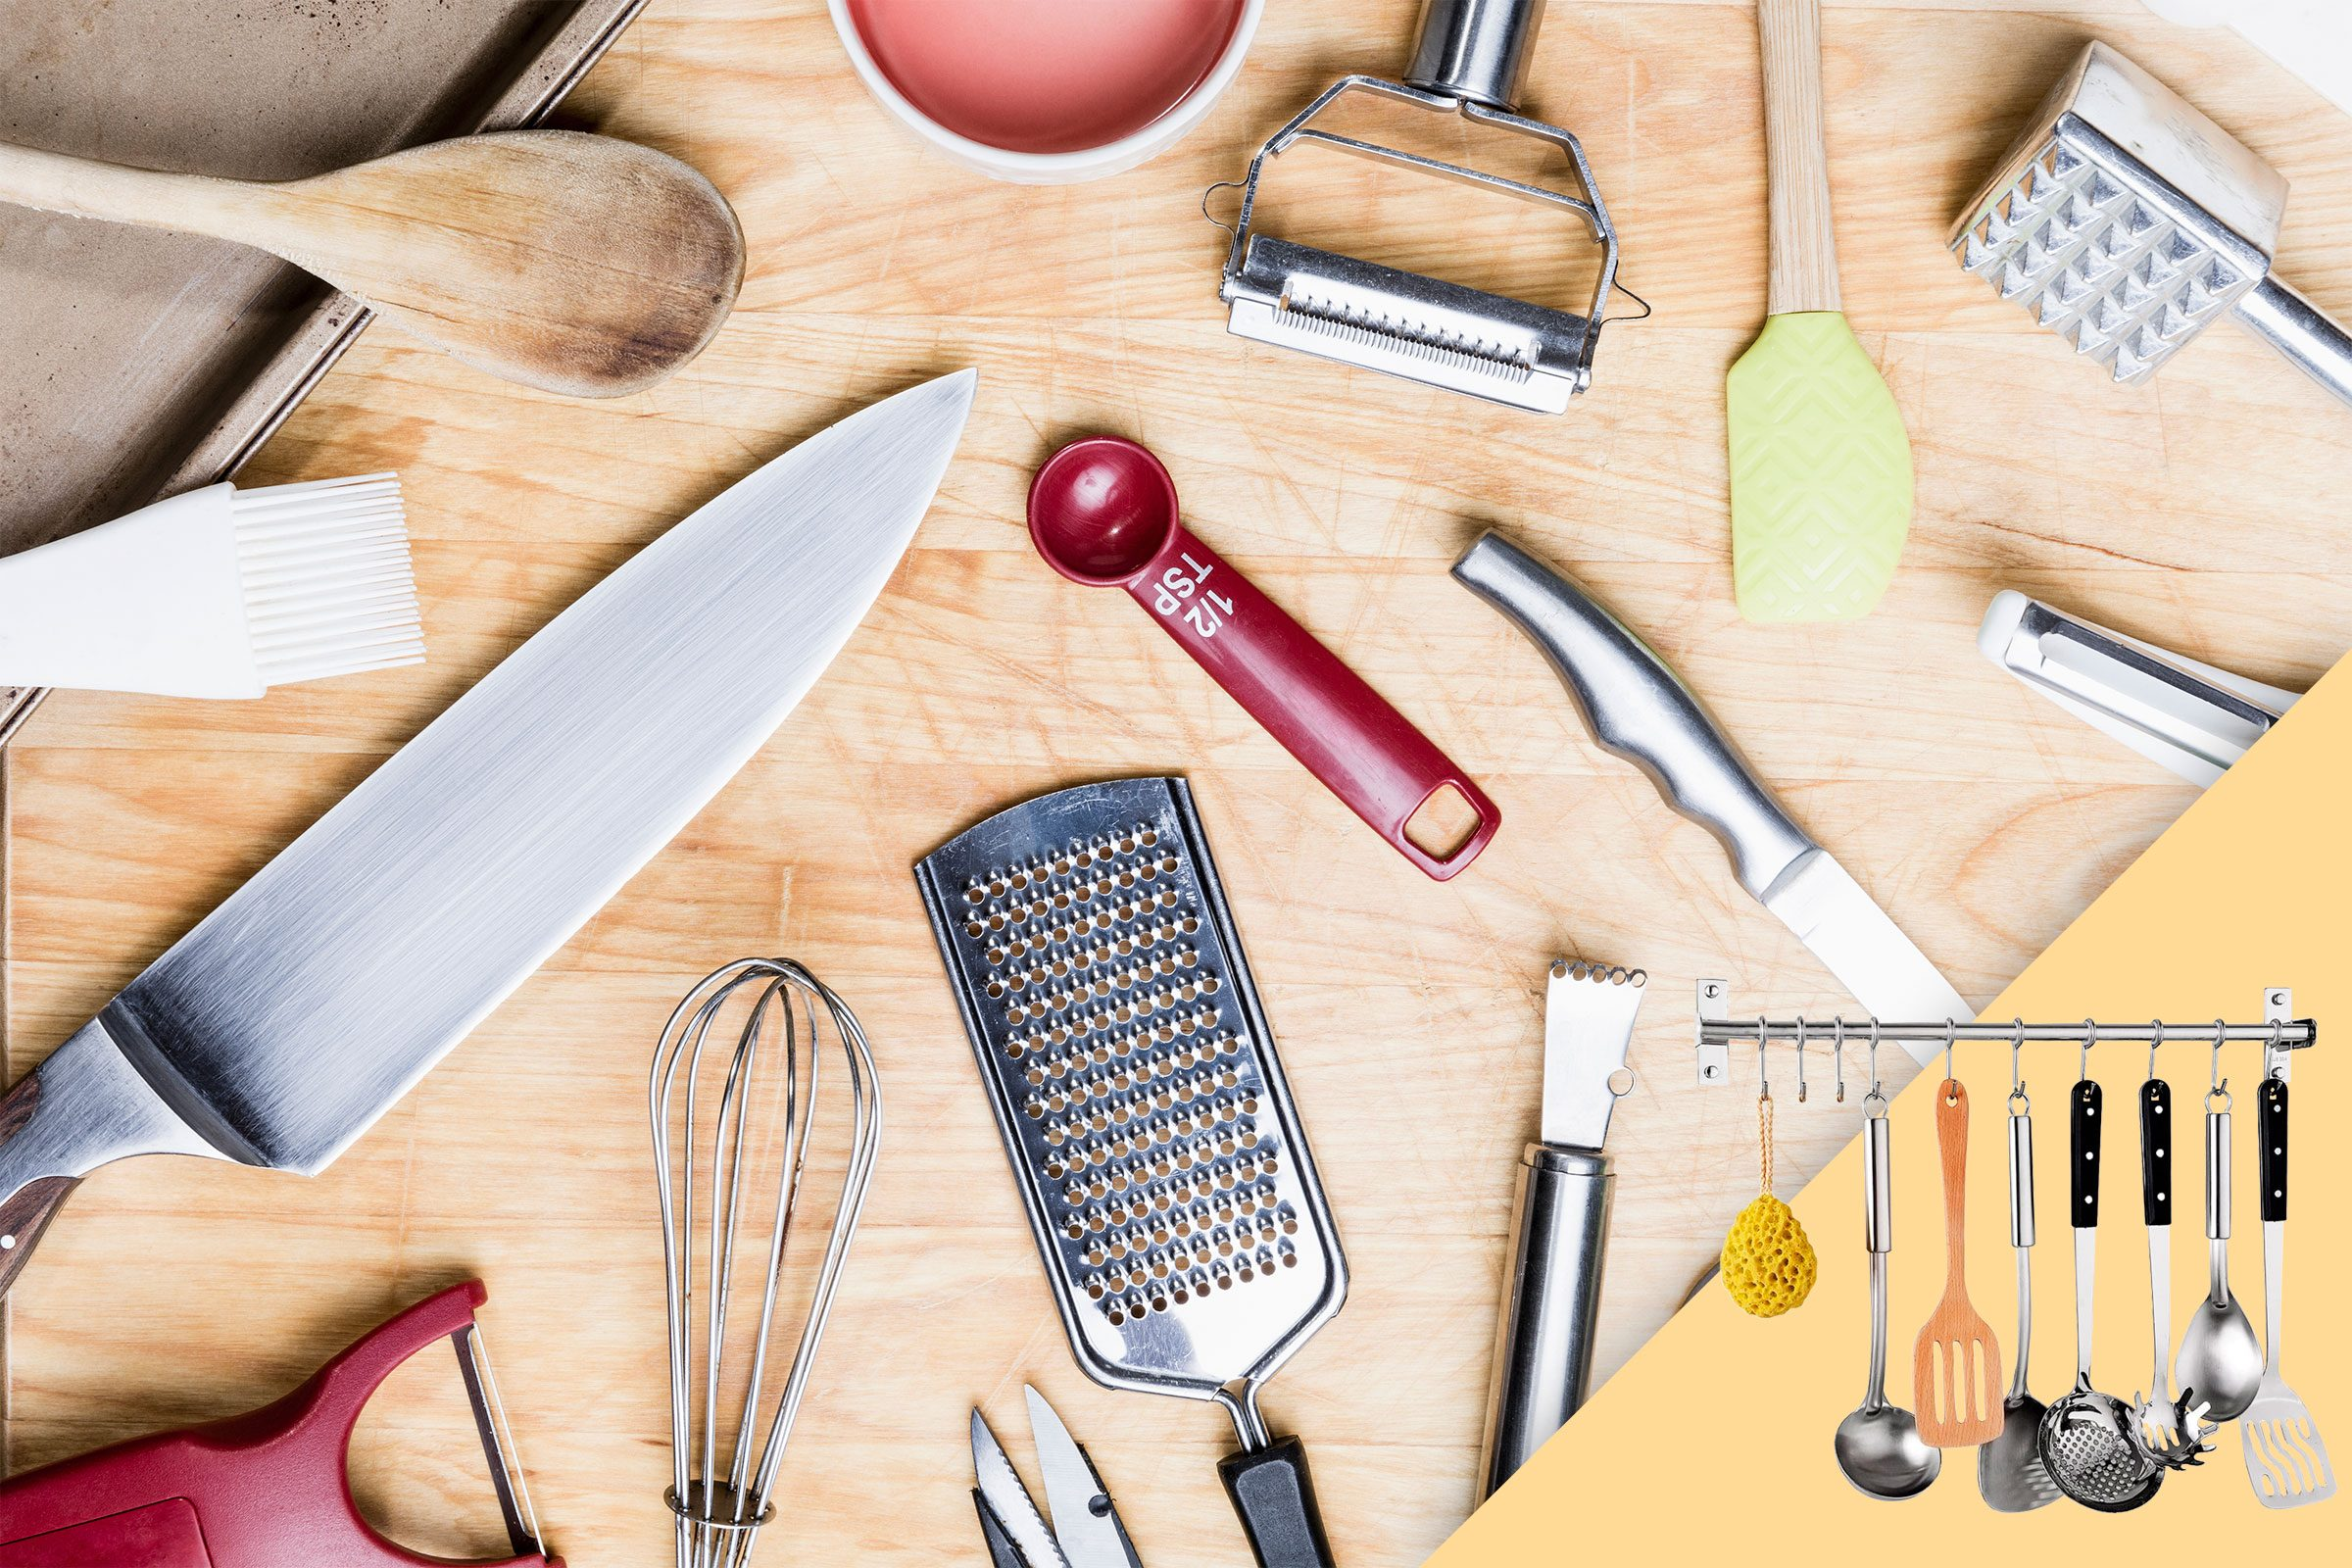 kitchen tools and utensils splayed on wood background; with suggested product